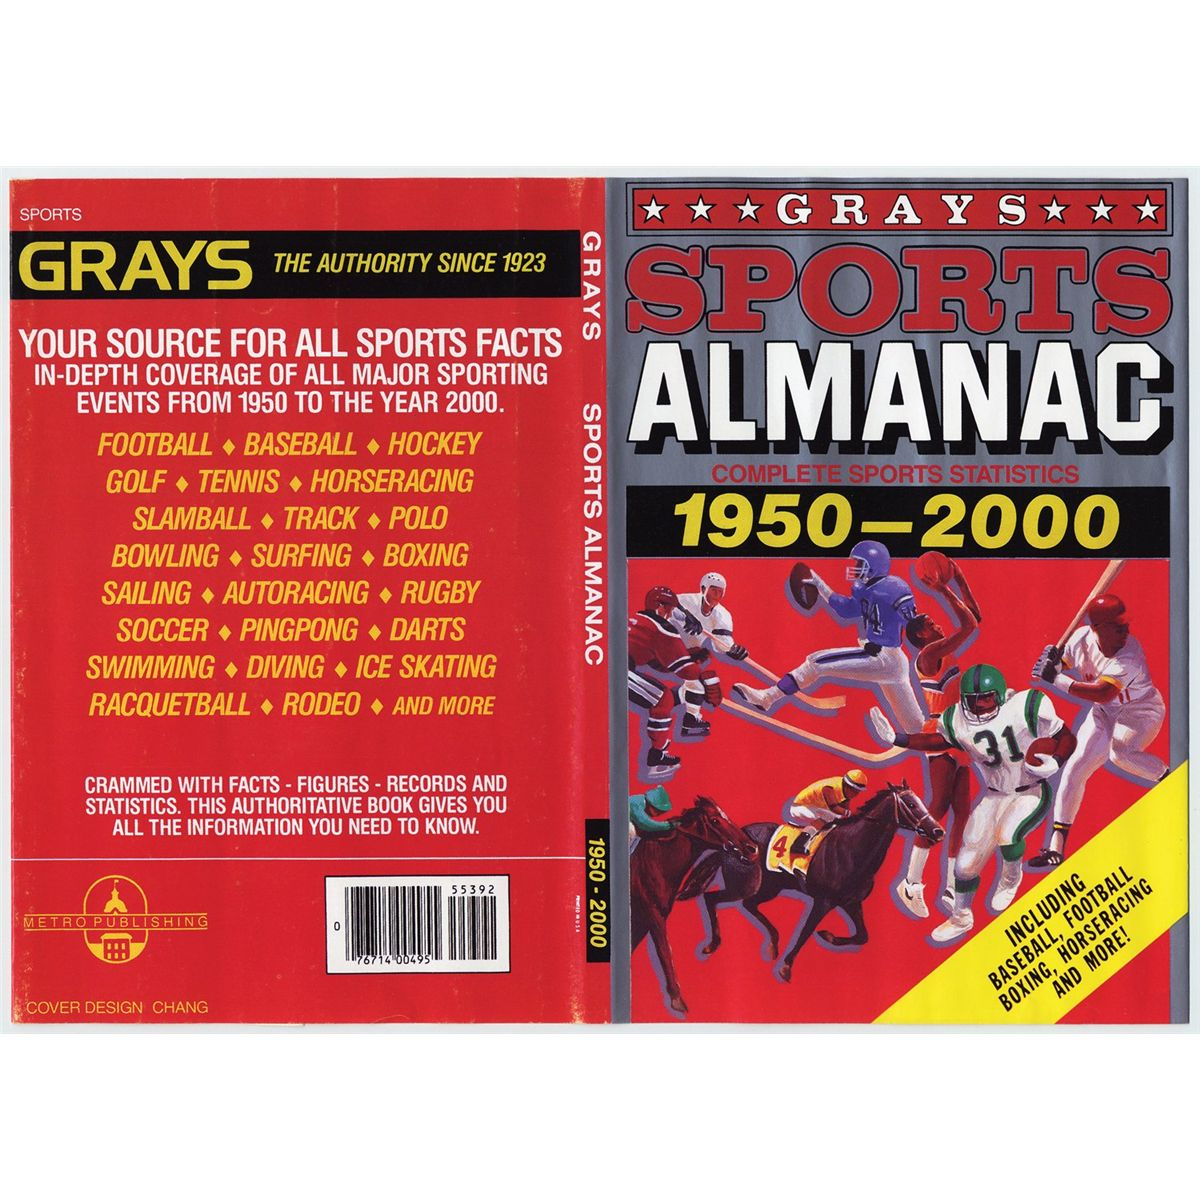 Grays Sports Almanac Back To The Future 2 Wiring Library Hunter Dsp Diagram Dust Jacket From Ii